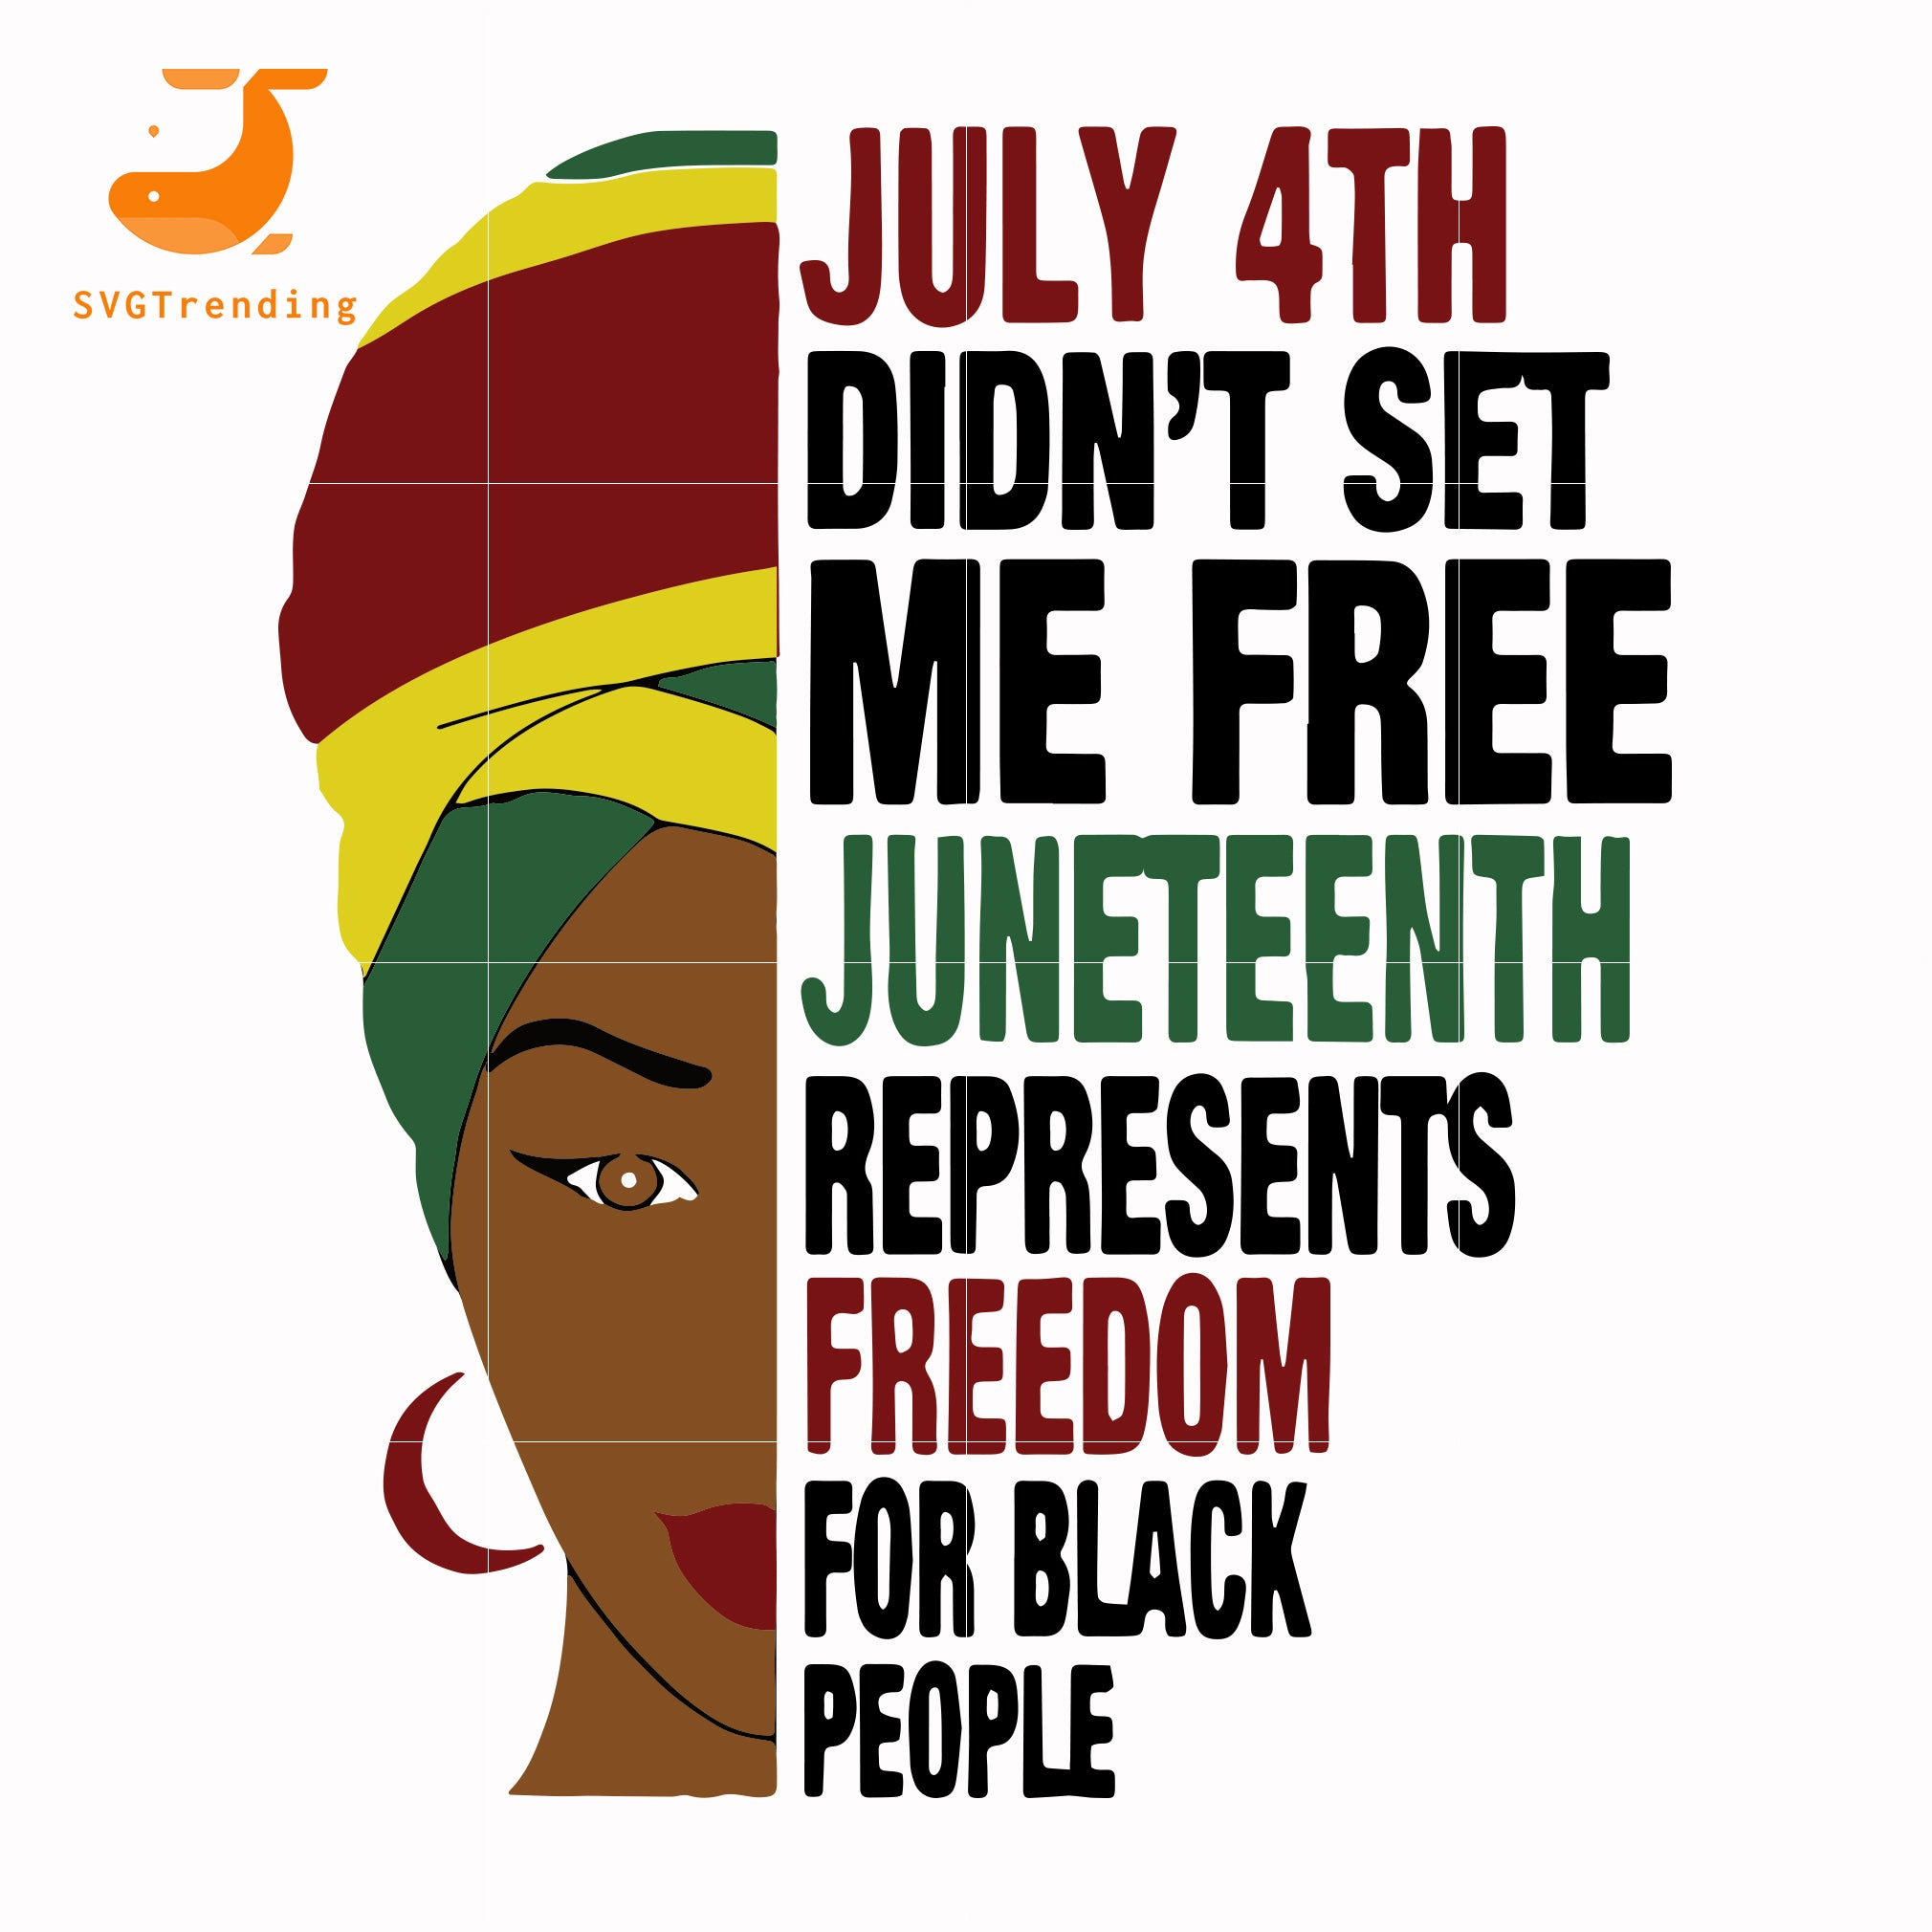 juneteenth represents svg, png, dxf, eps, digital file